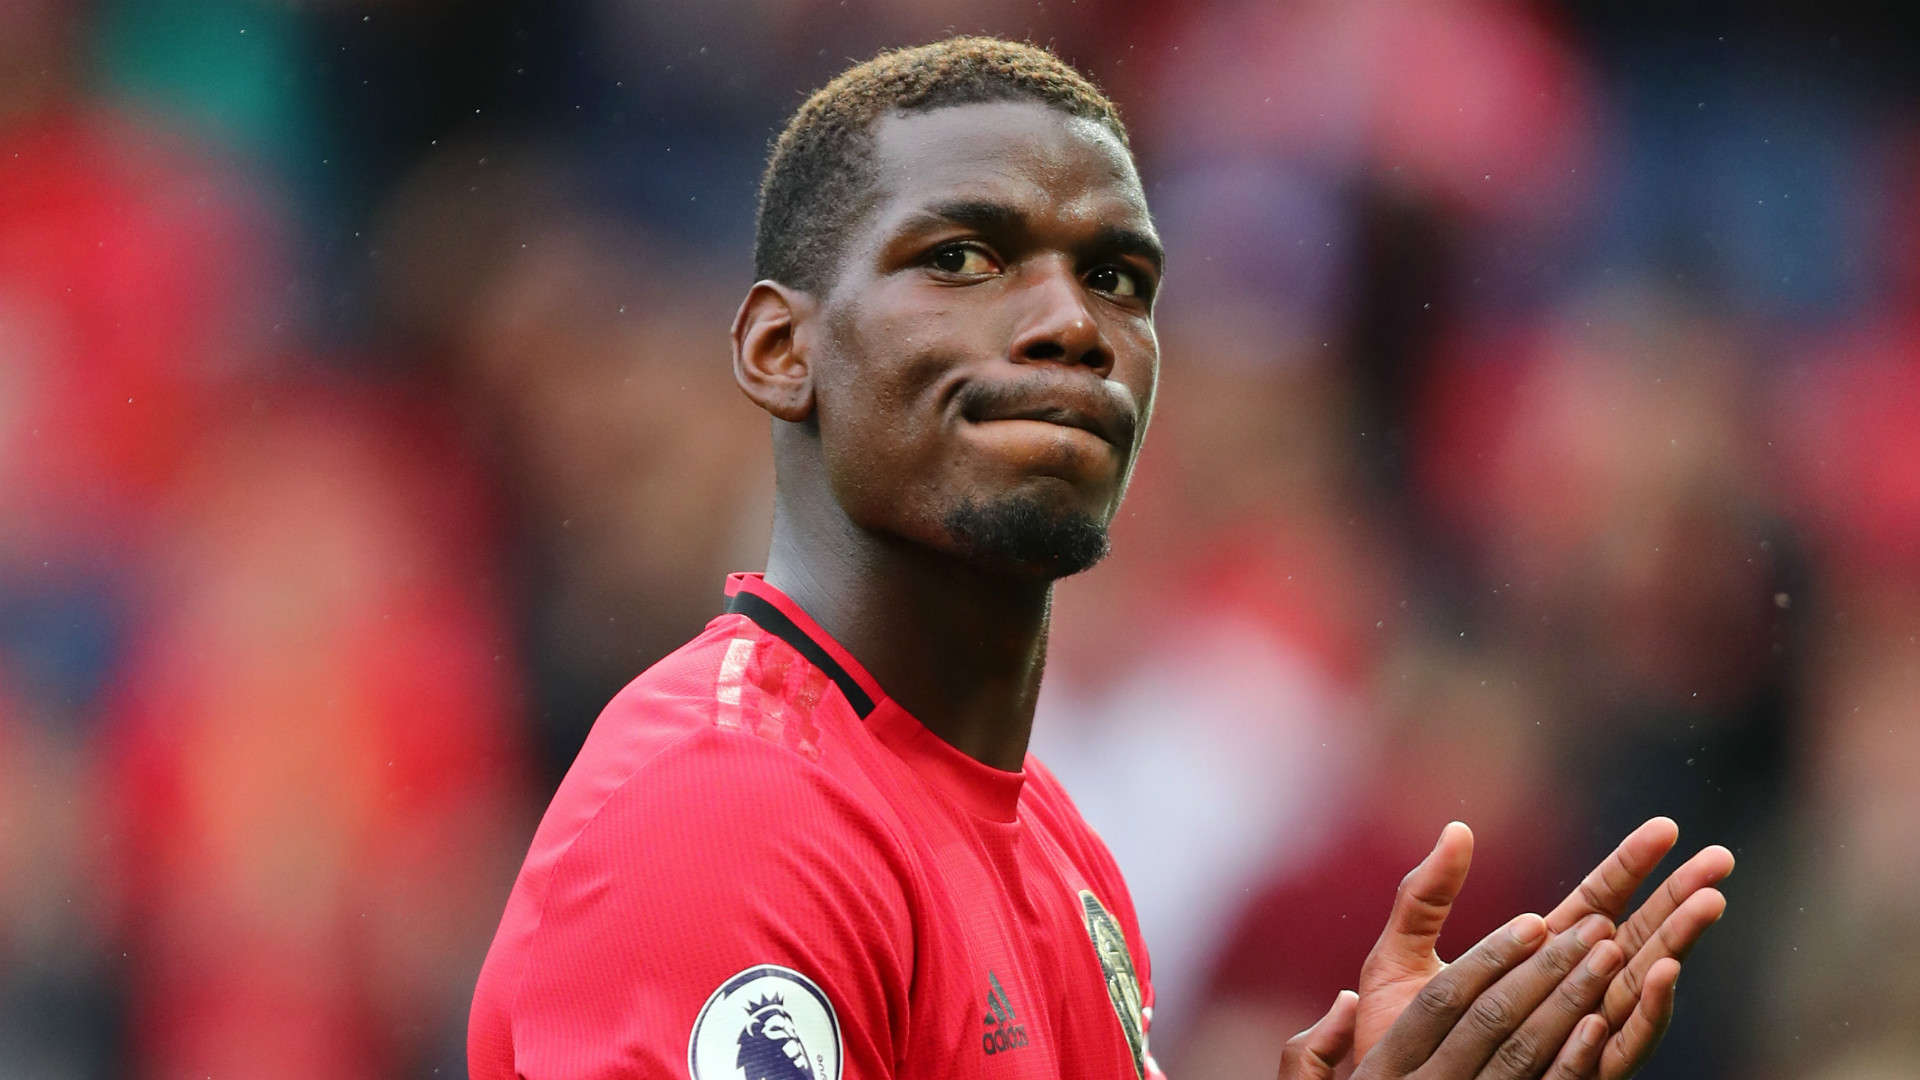 'Pogba can't leave so he's focused on Man Utd' – Frenchman's brother questions quality at Old Trafford